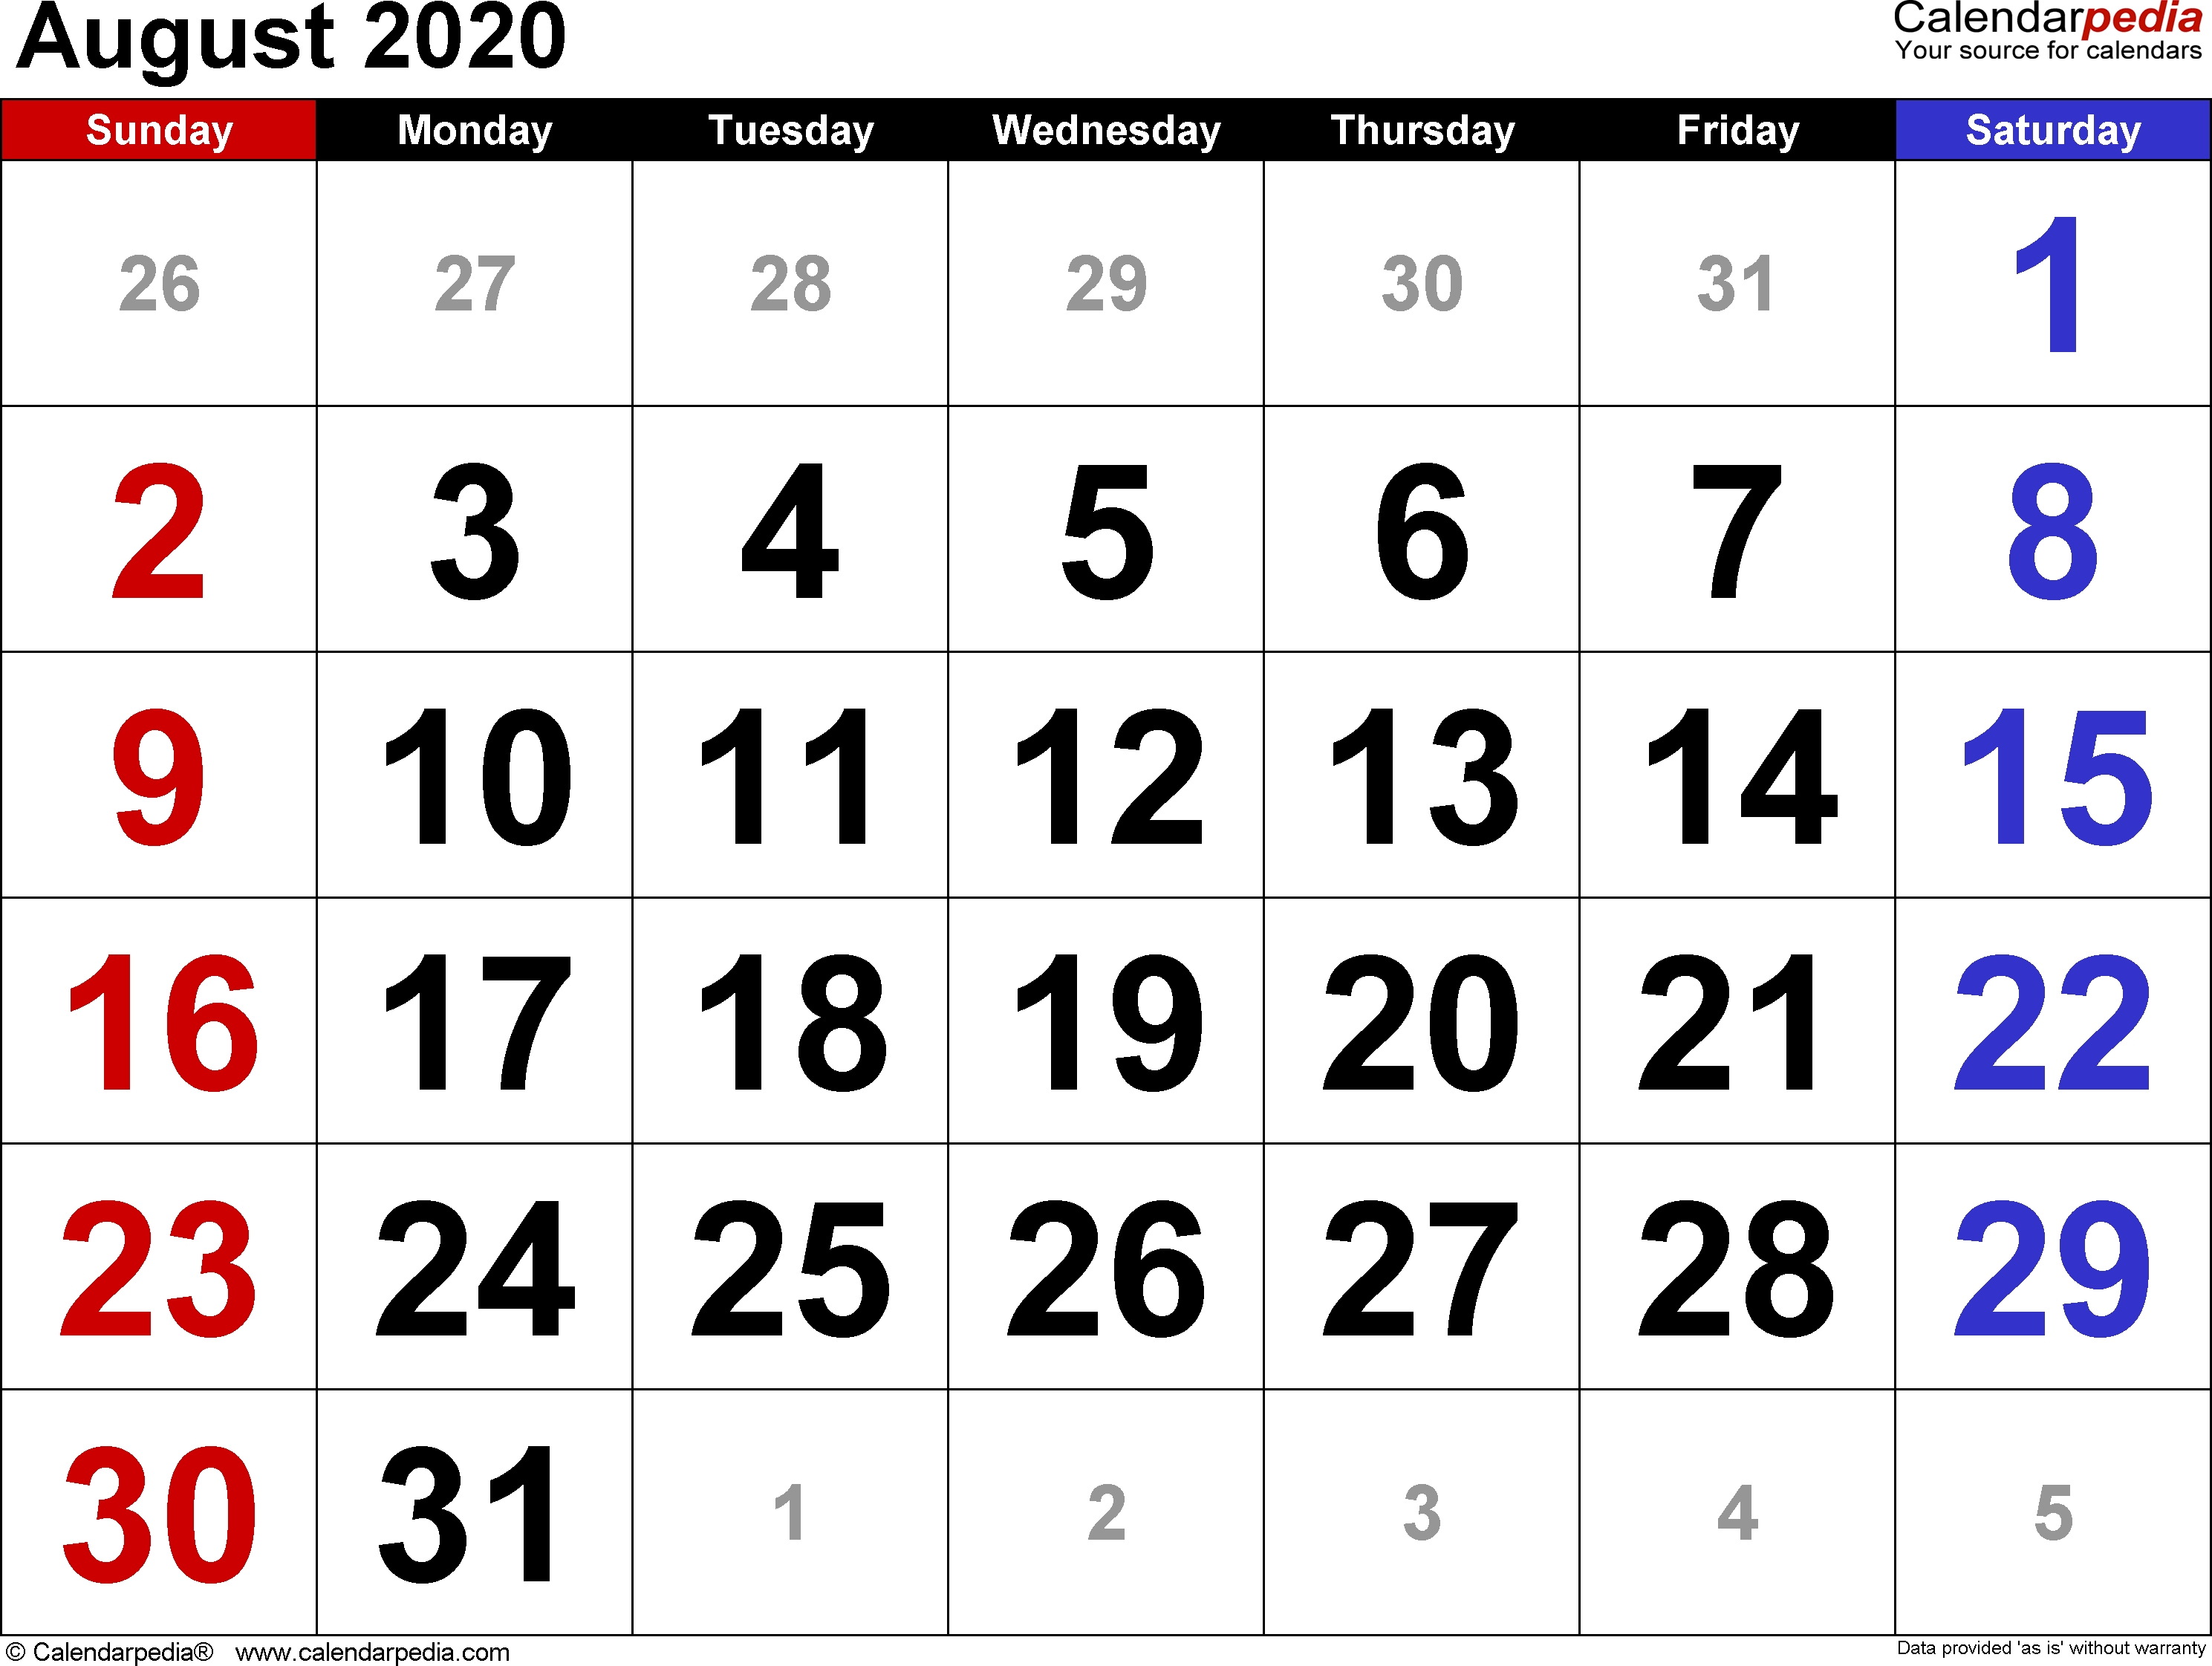 August 2020 Calendars For Word, Excel & Pdf